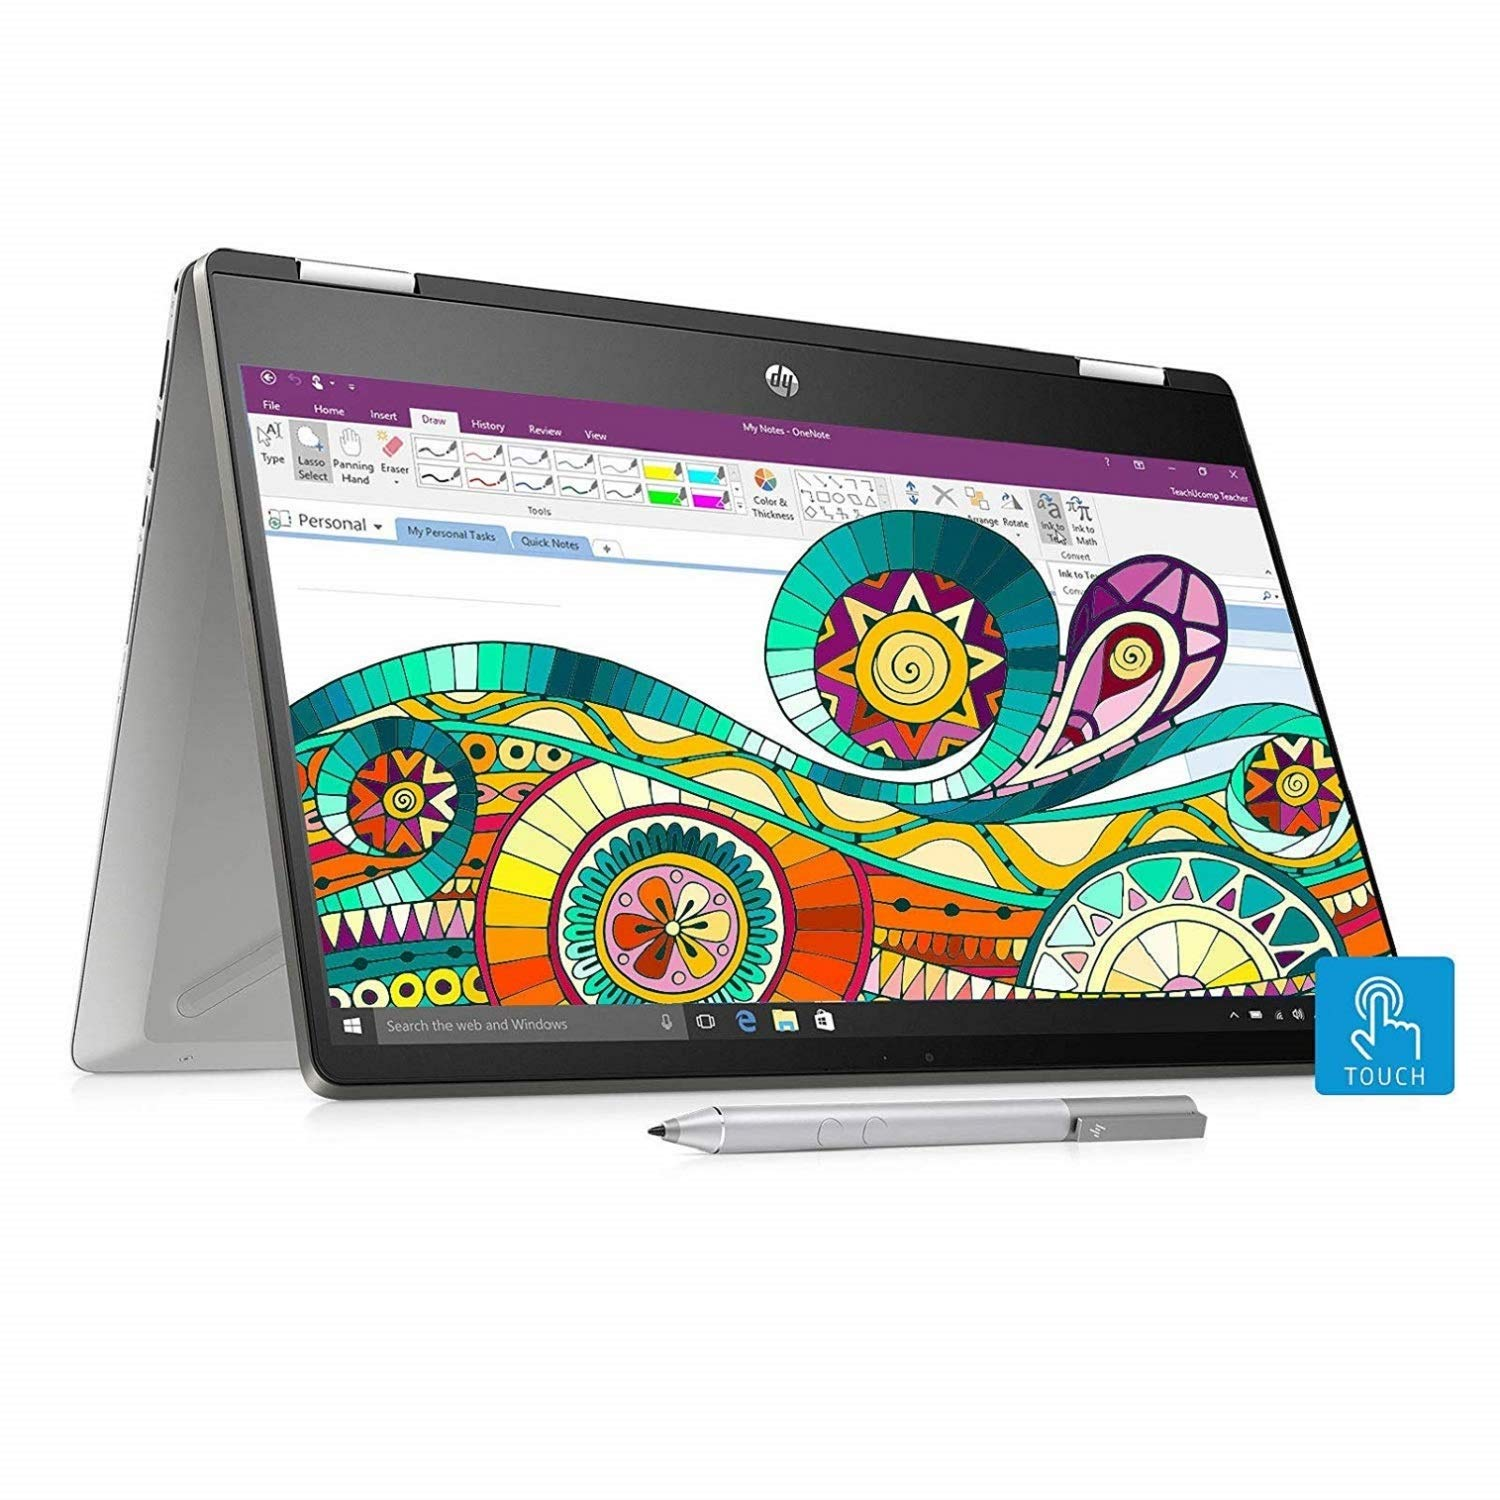 Buy Hp Pavilion X360 Core I5 10th Gen 14 Inch Fhd Touchscreen 2 In 1 Alexa Enabled Laptop 8gb 256gb Ssd 1tb Hdd Windows 10 Ms Office Inking Pen Fpr Natural Silver 1 59 Kg 14 Dh1011tu Online At Low Prices In India Amazon In